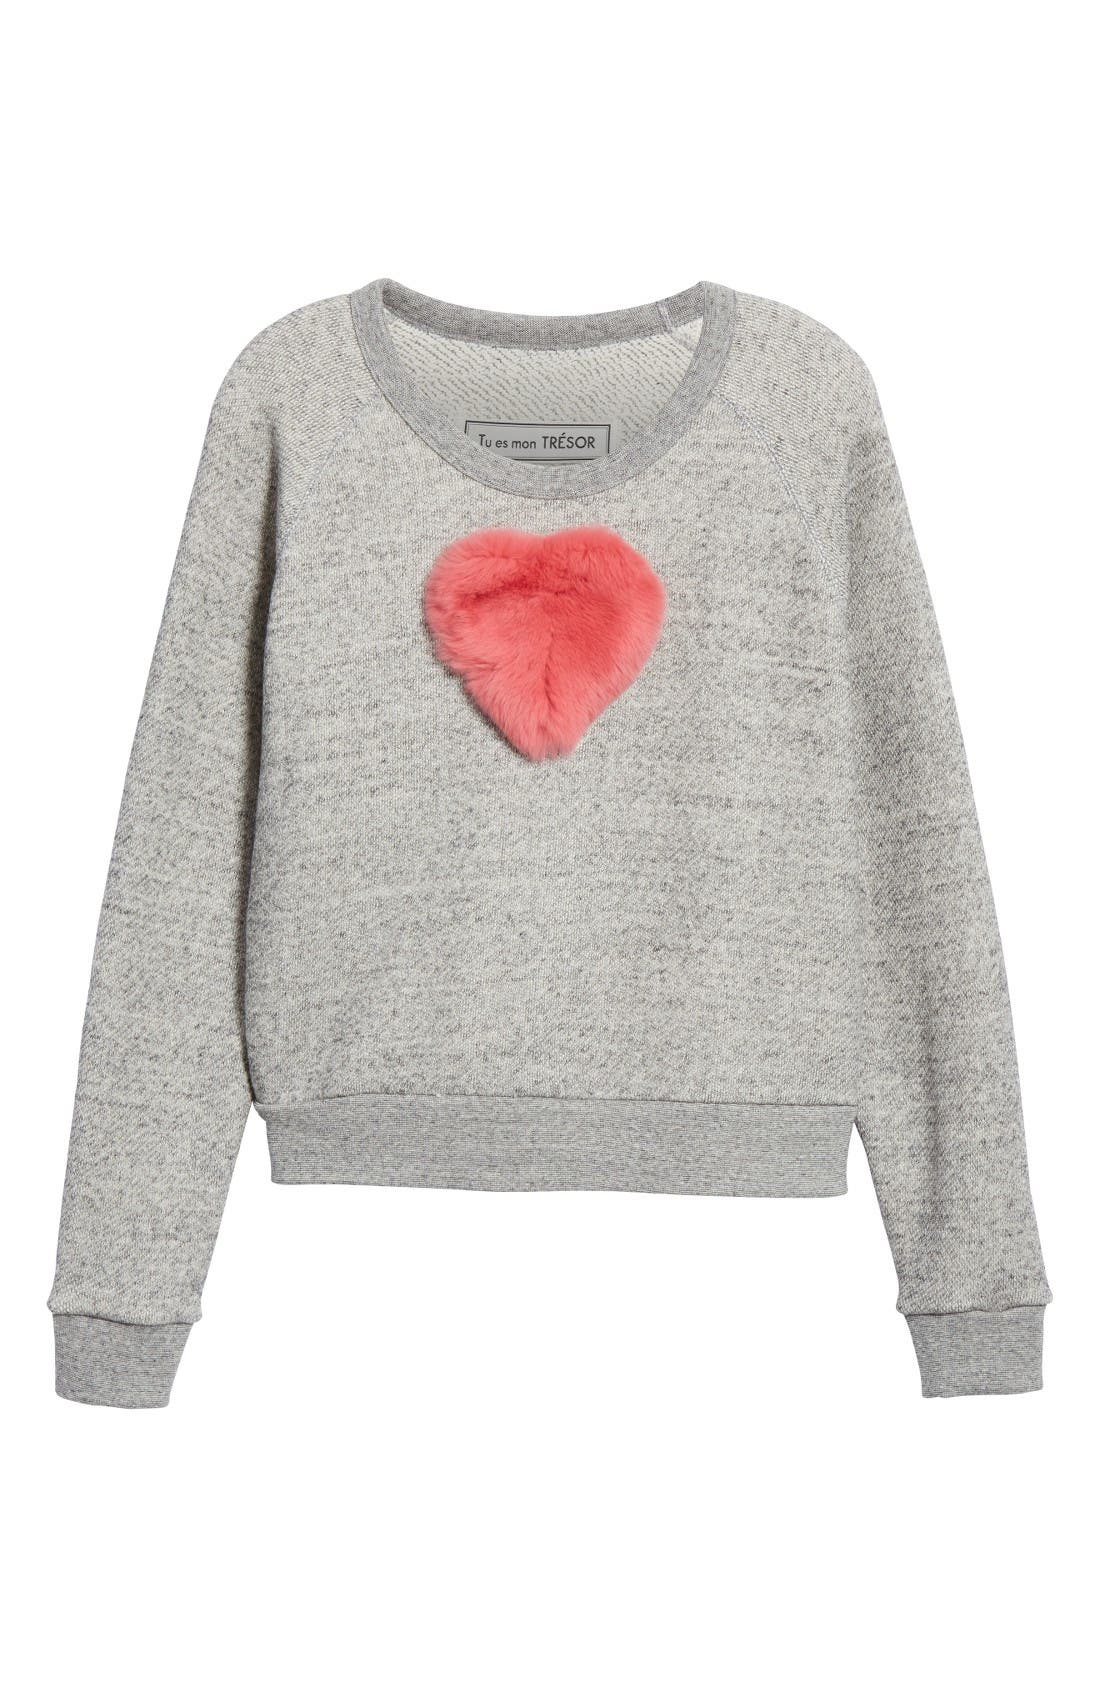 One Heart Pullover,                             Alternate thumbnail 4, color,                             Charcoal/Red